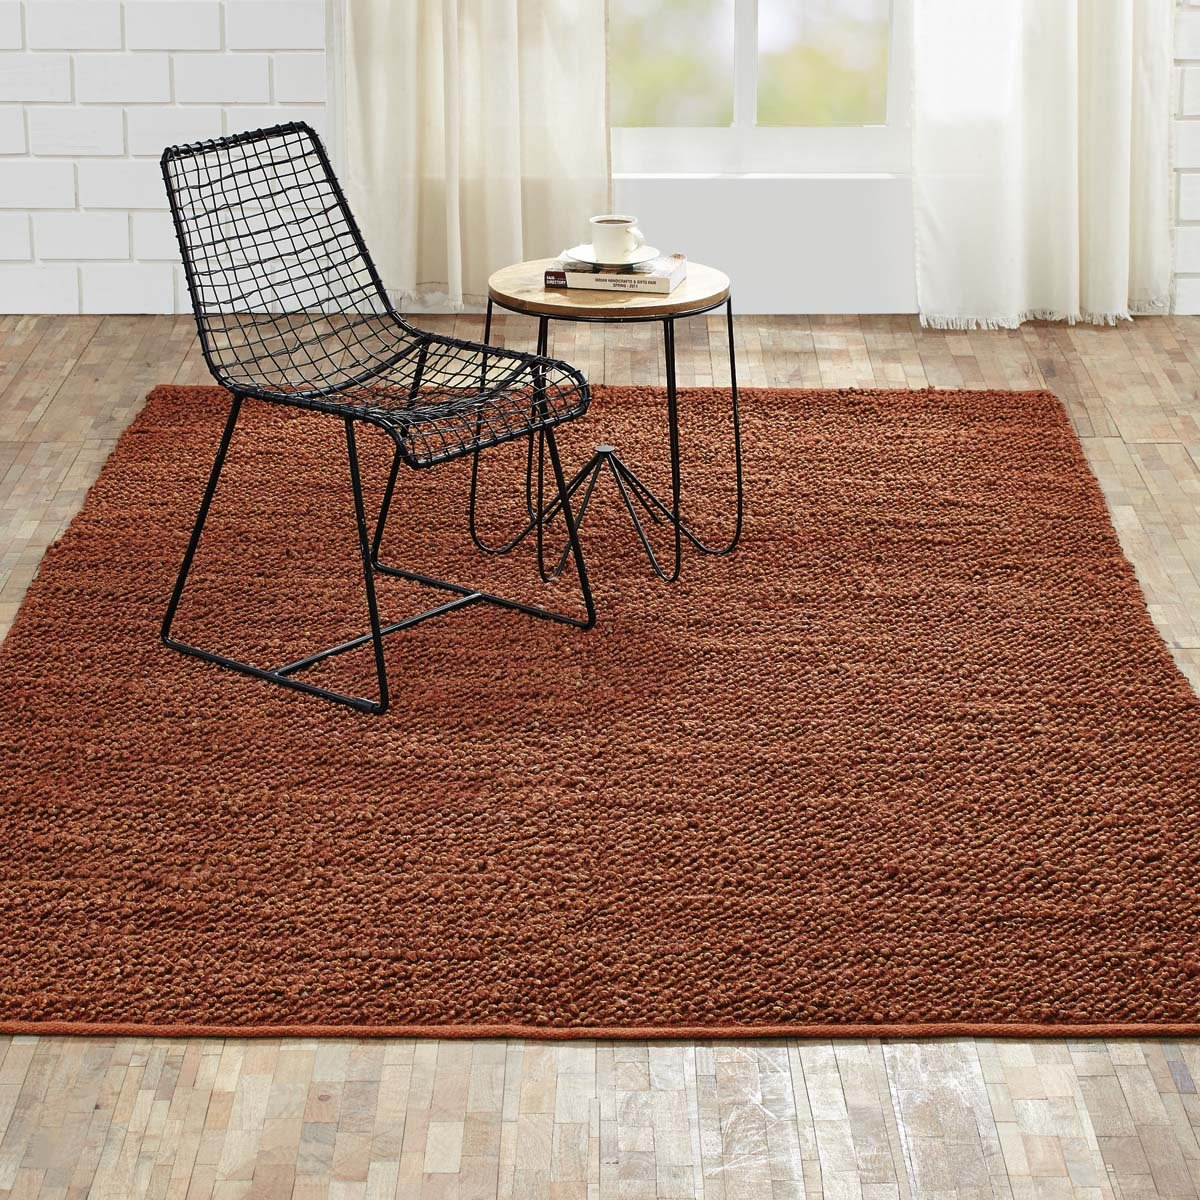 Shop Our Brand Rugs Collection